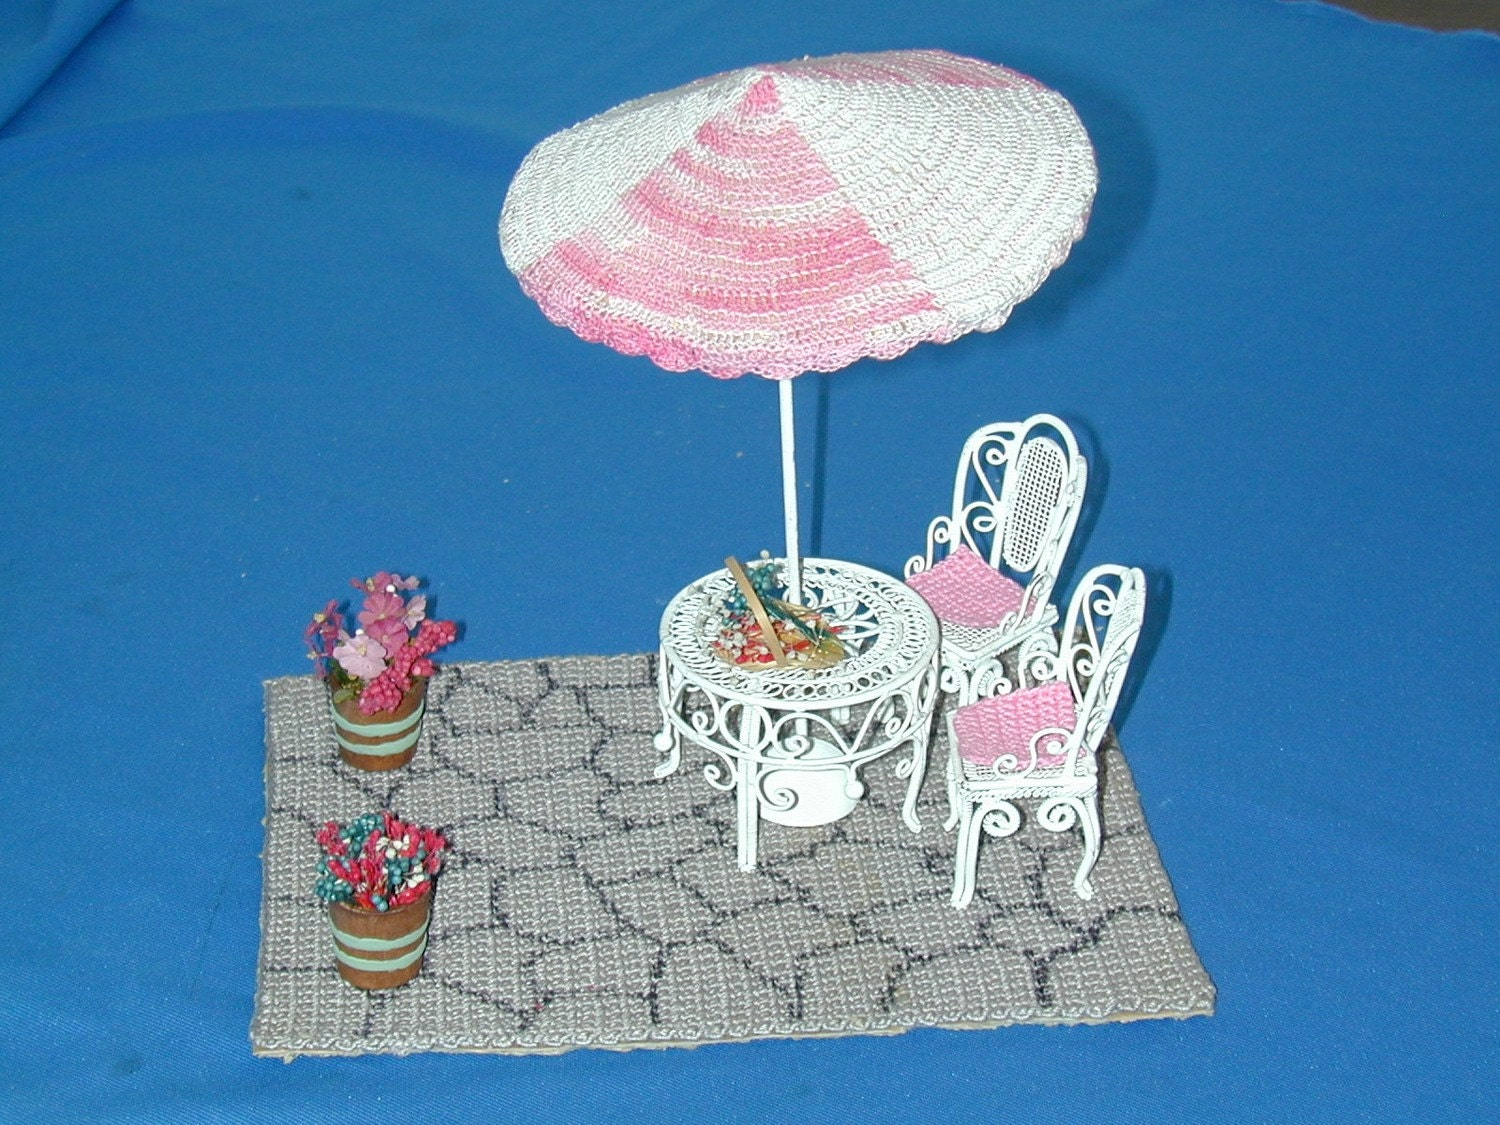 Patio Set inc. Patio, Table, Chairs, Umbrella & Flowers Dollhouse Miniature